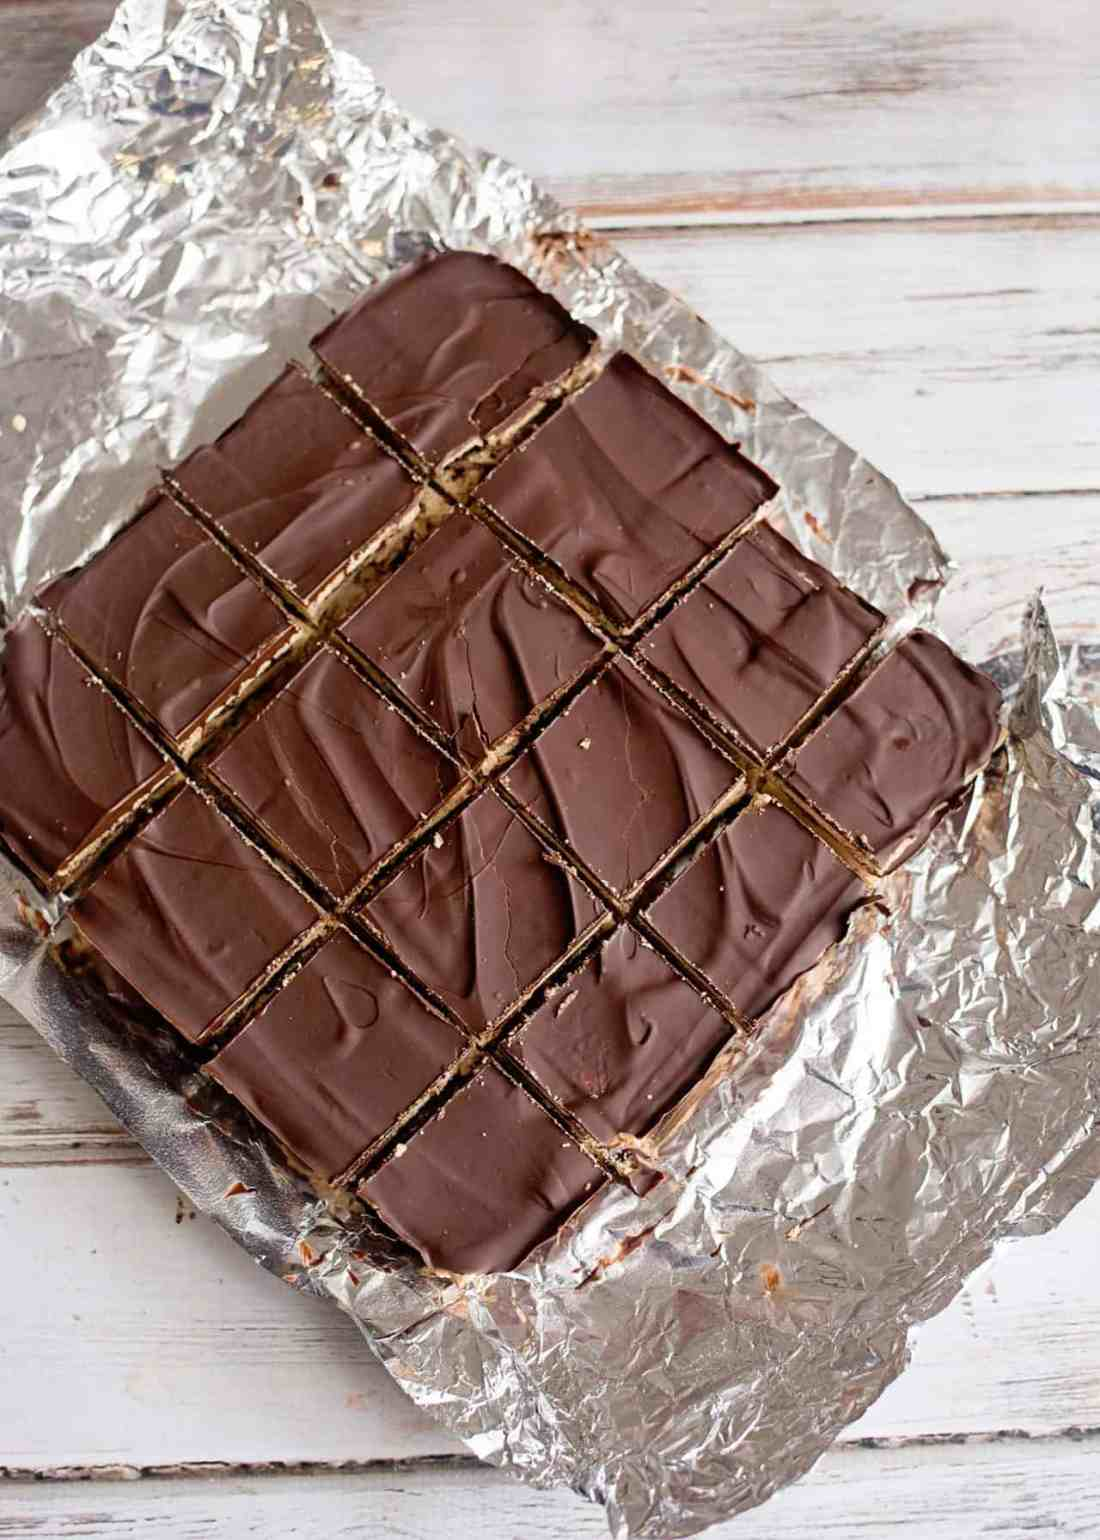 When ready to eat, allow the bars to sit out on the counter for 5-10 minutes, cut and enjoy!